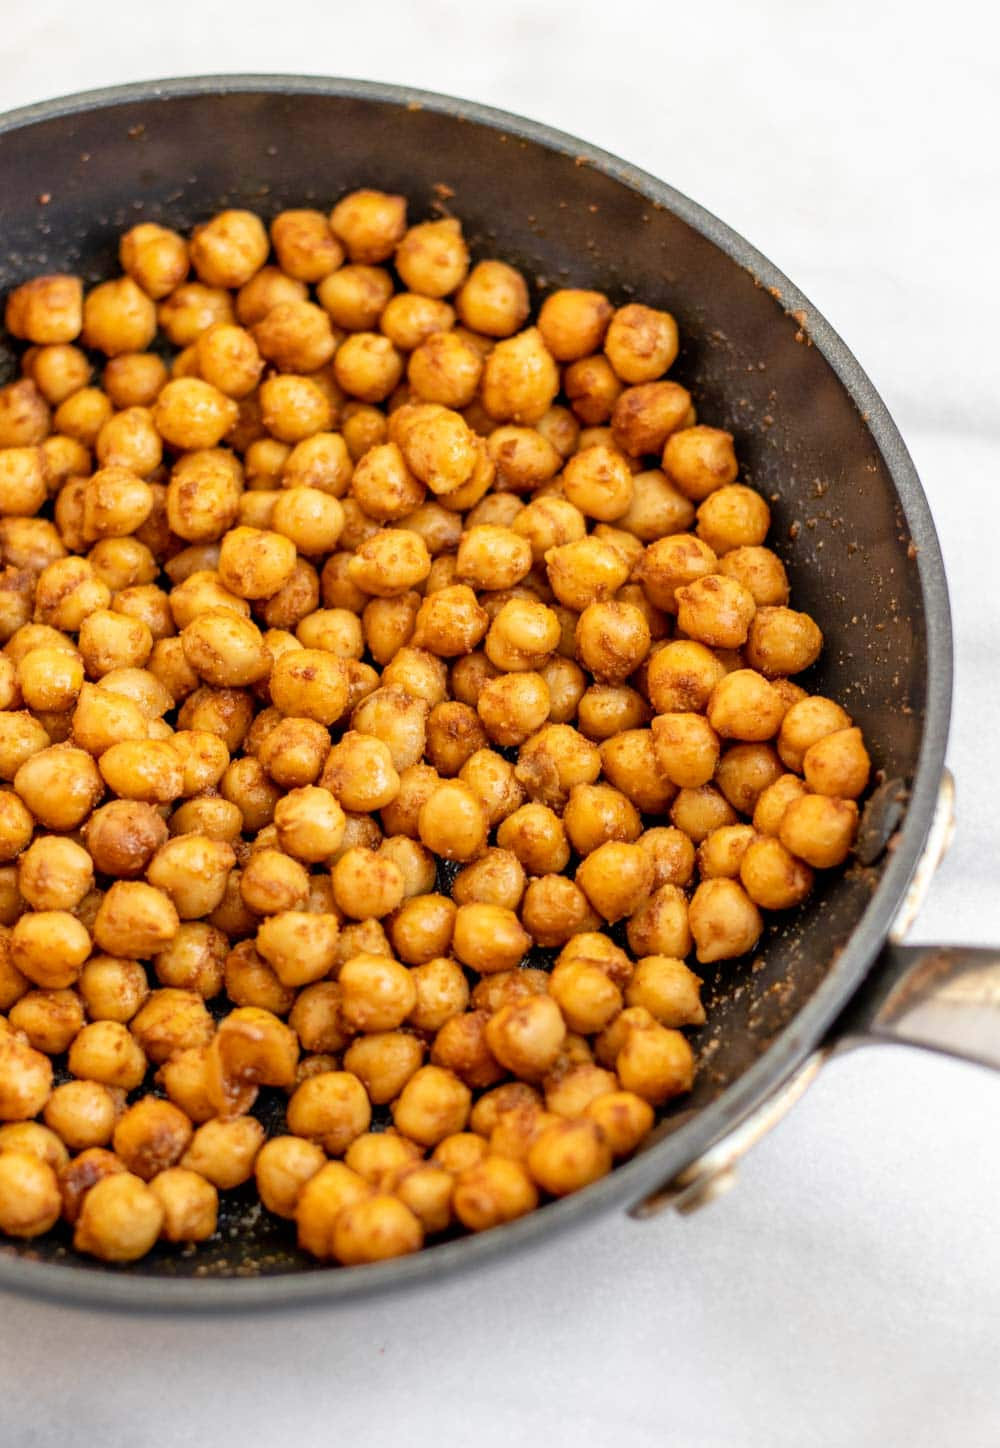 Sauteed chickpeas in a large pan with seasonings.